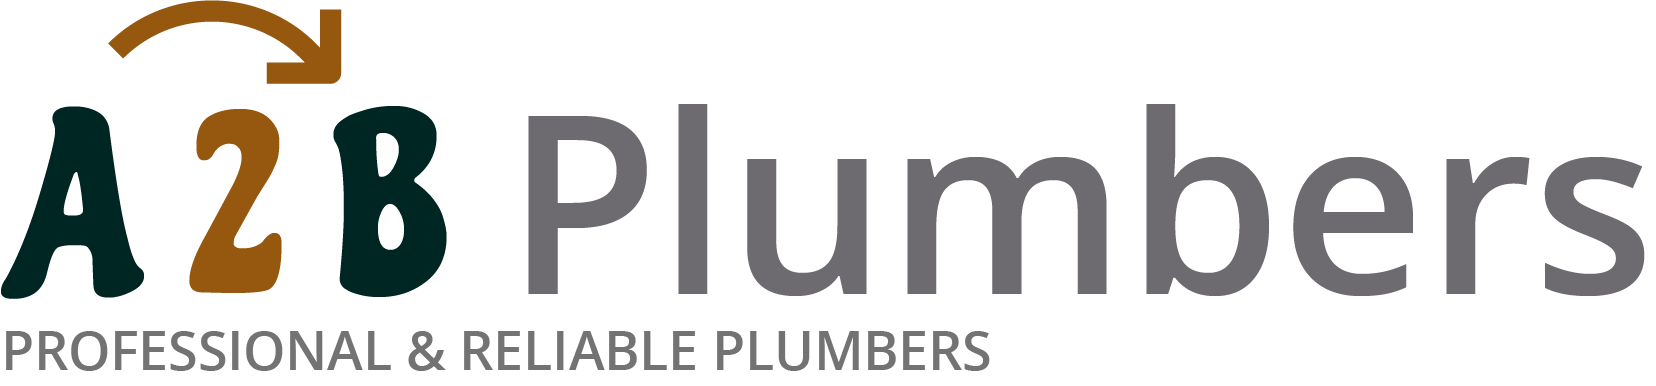 If you need a boiler installed, a radiator repaired or a leaking tap fixed, call us now - we provide services for properties in Kempston and the local area.